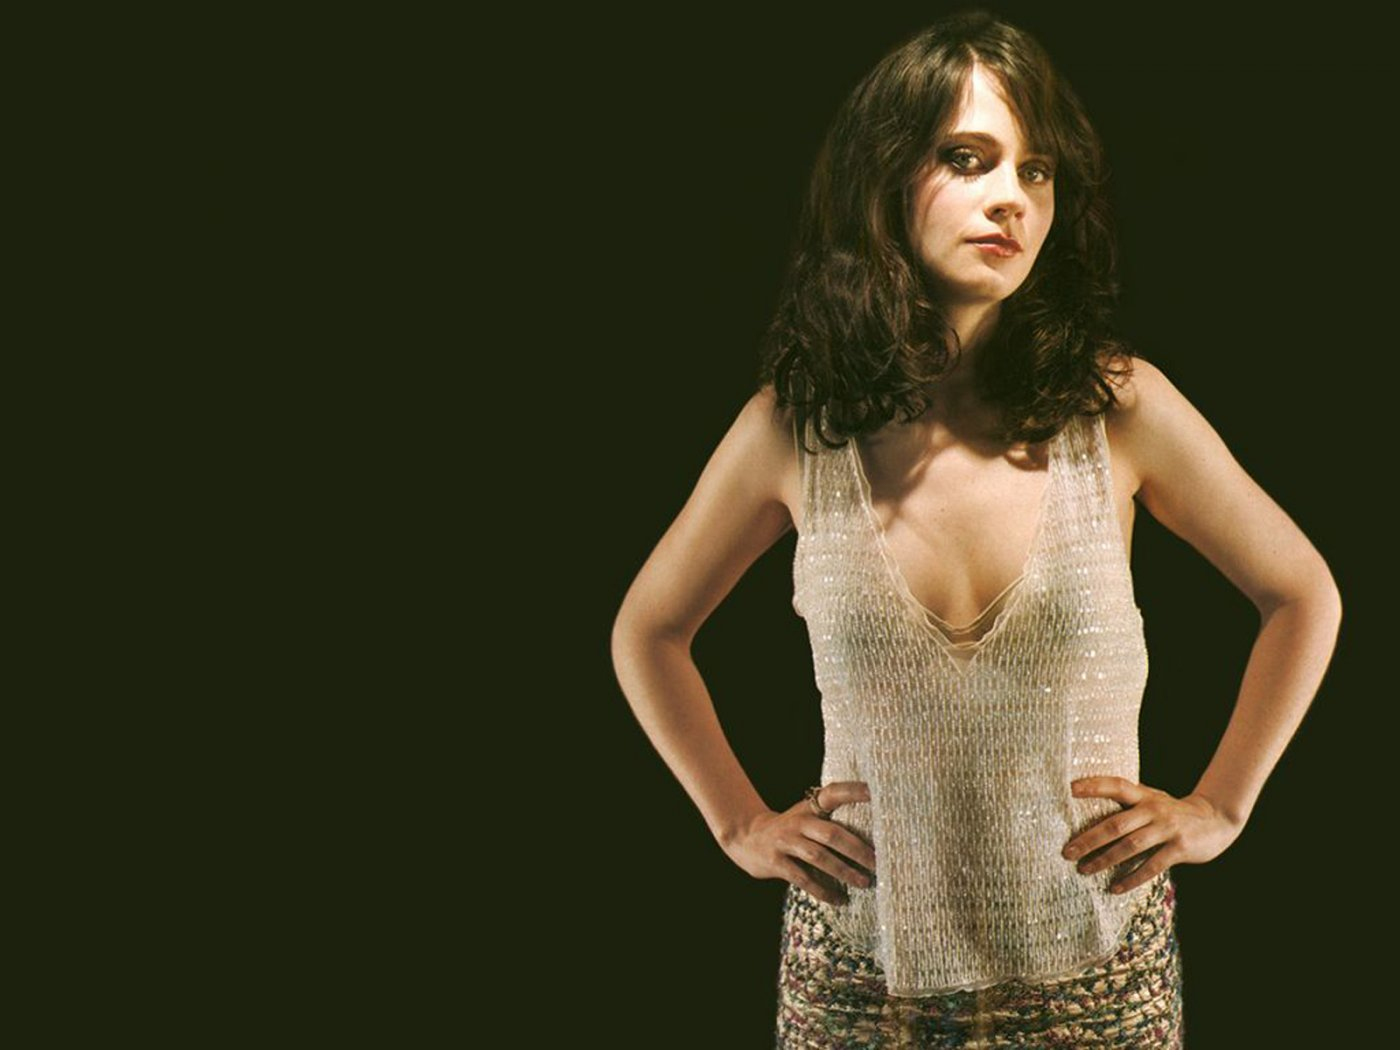 Zooey-Deschanel-Hot